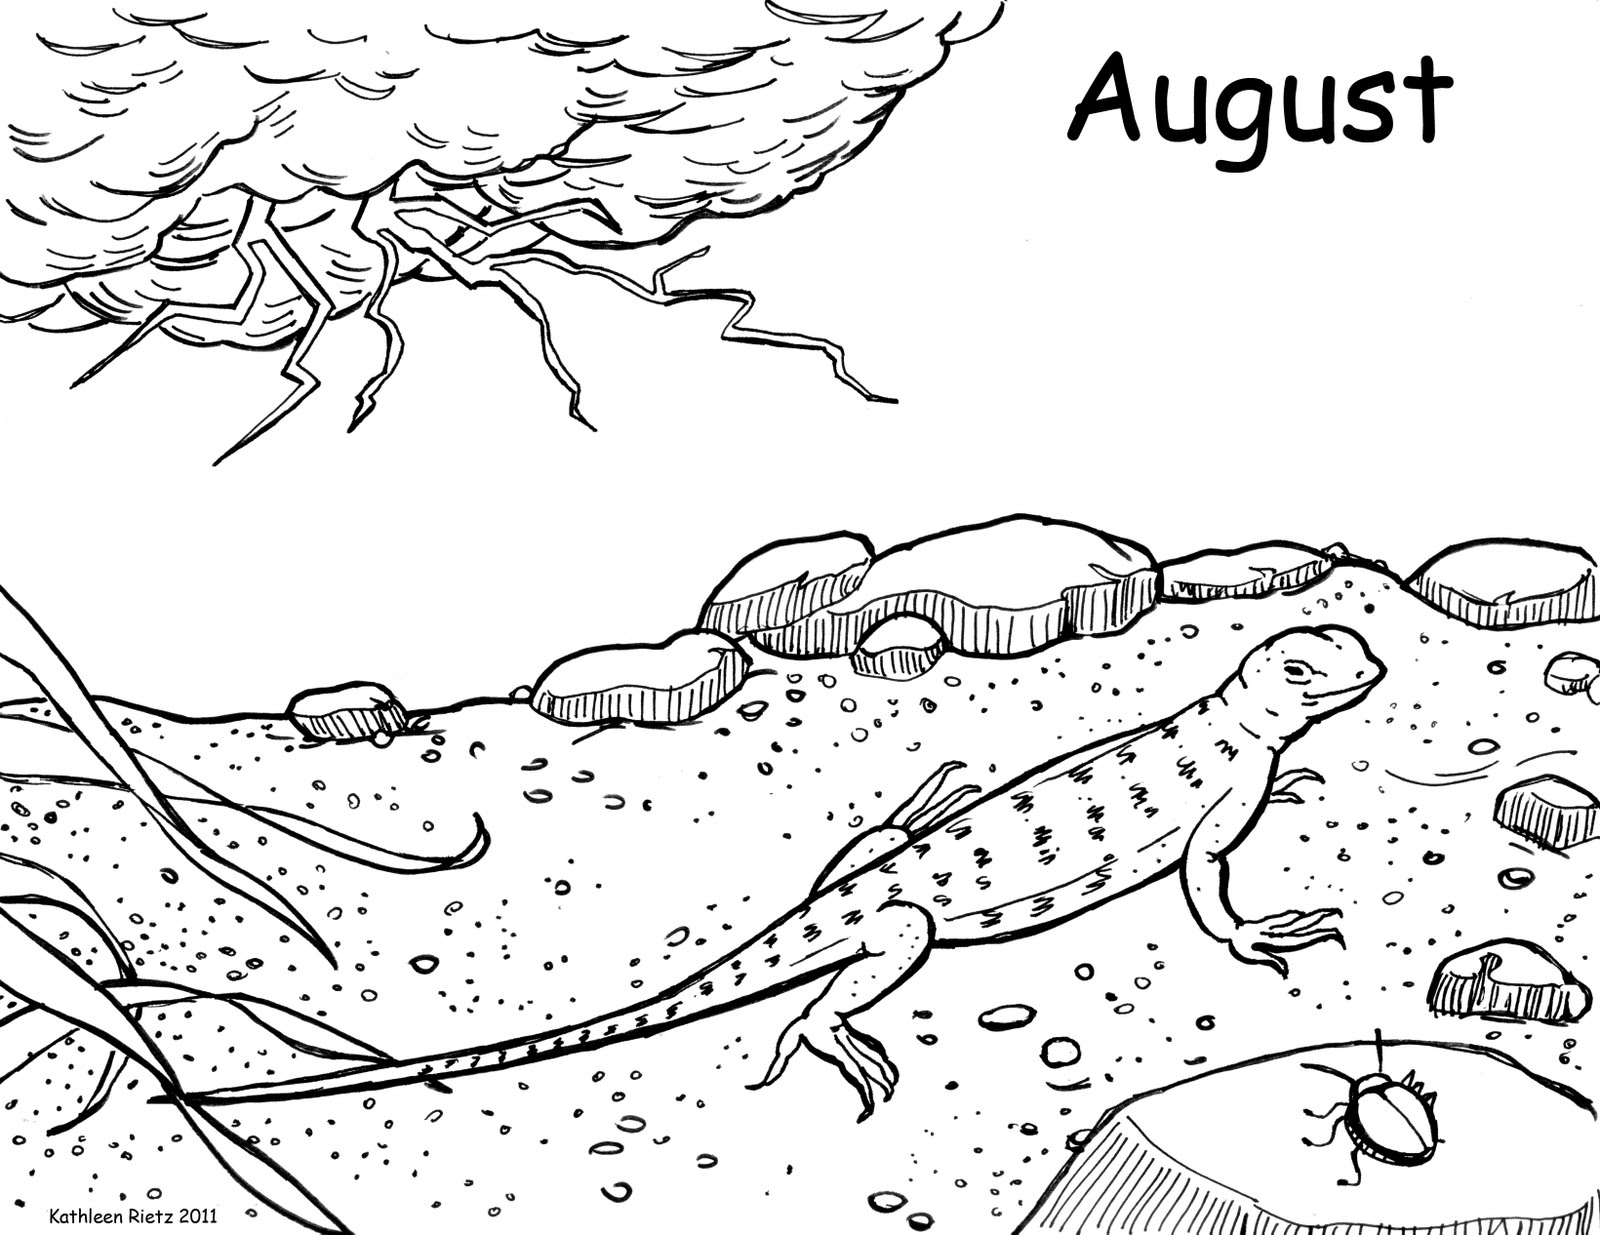 Desert Ecosystem Drawing at GetDrawings.com | Free for personal use ...